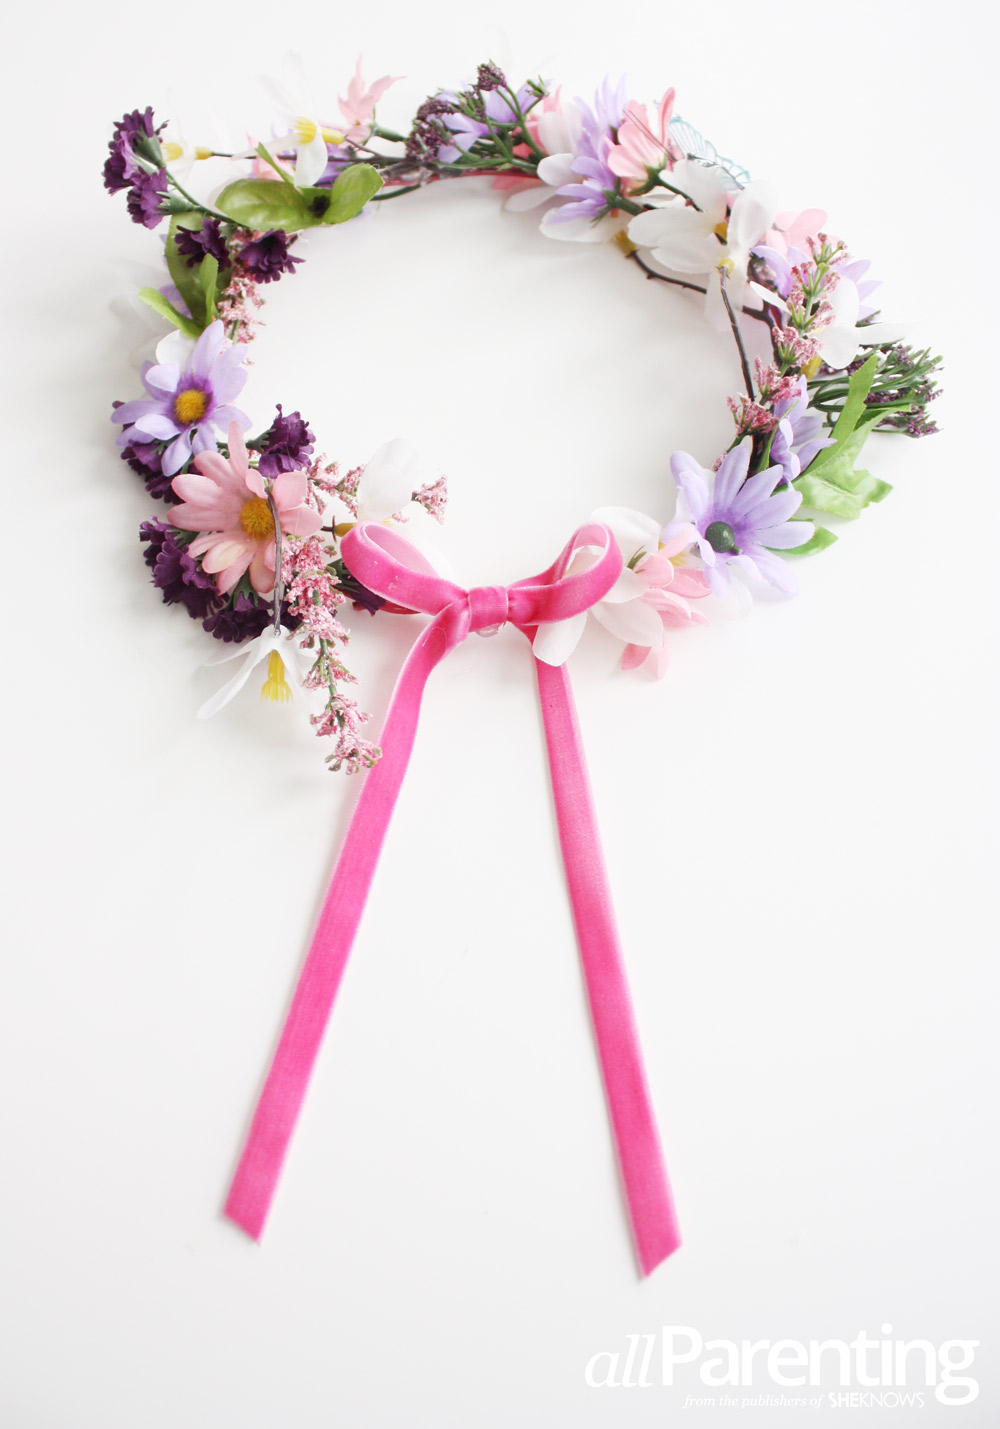 Make a childrens fairy flower crown allparenting fairy flower crown izmirmasajfo